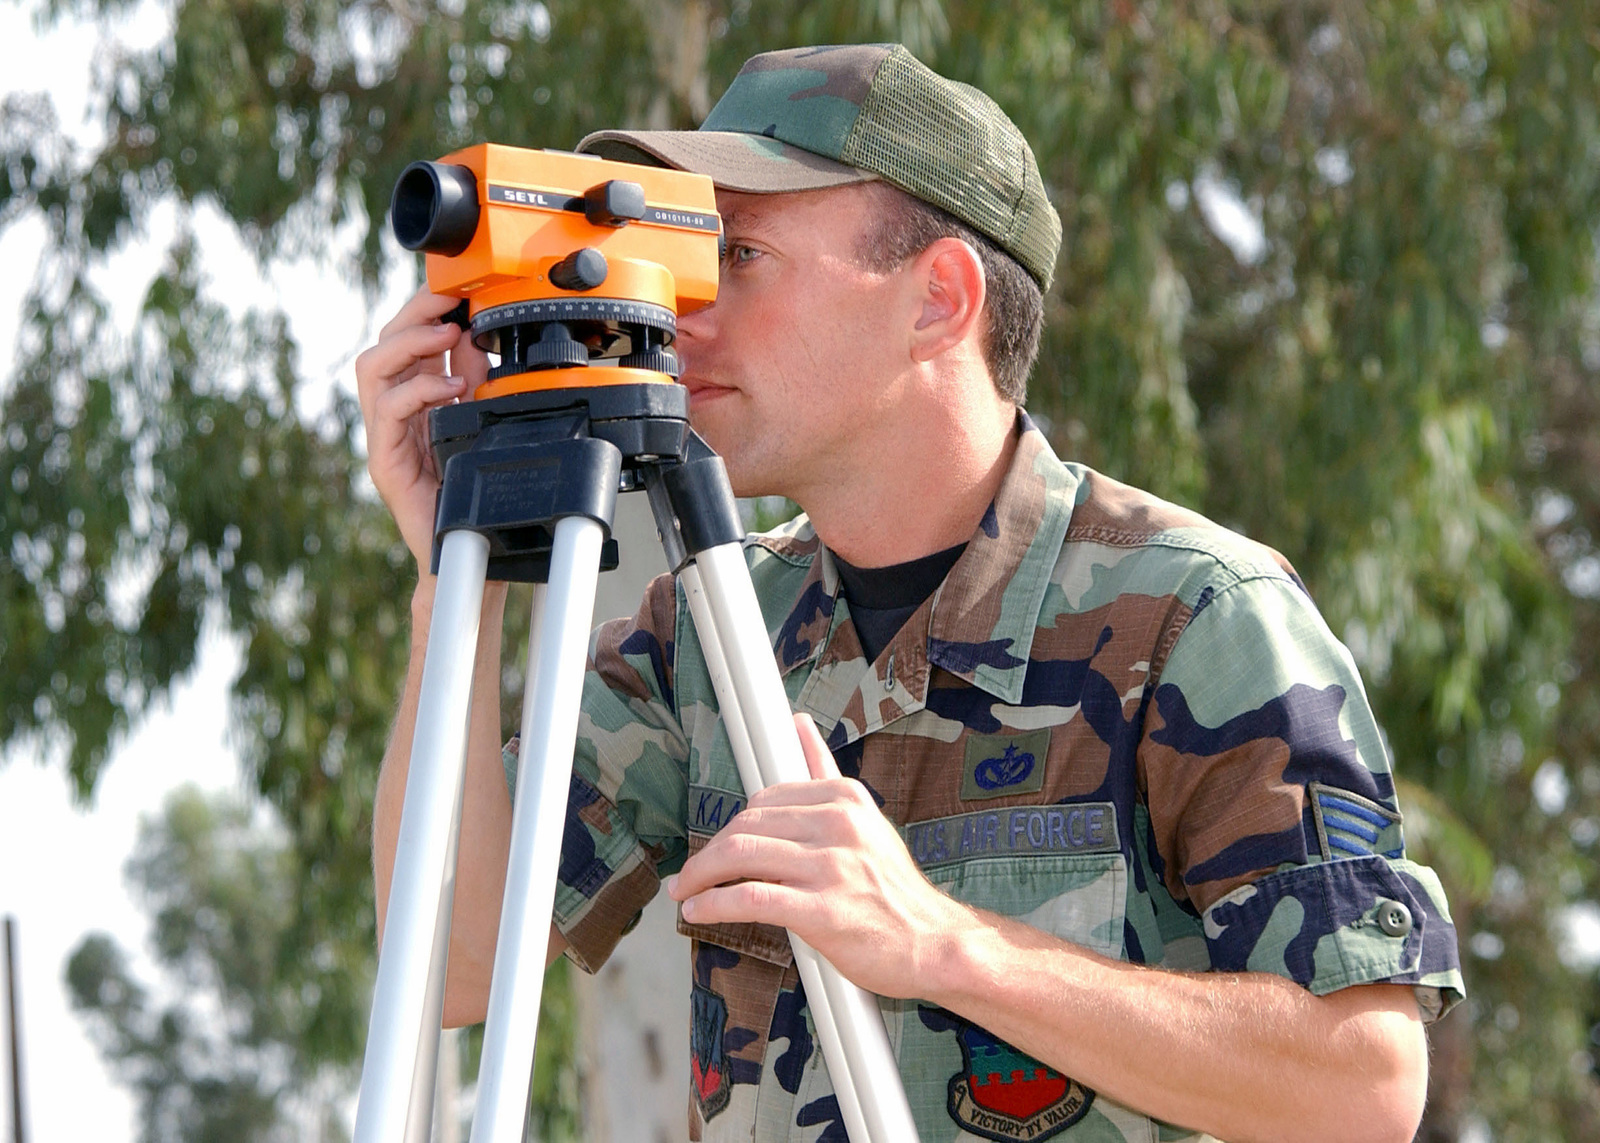 US Air Force (USAF) STAFF Sergeant (SSGT) Jay Kaas, an engineering assistant, surveys the lay of the land at Incirlik Air Base, Turkey in support of Operation NORTHERN WATCH